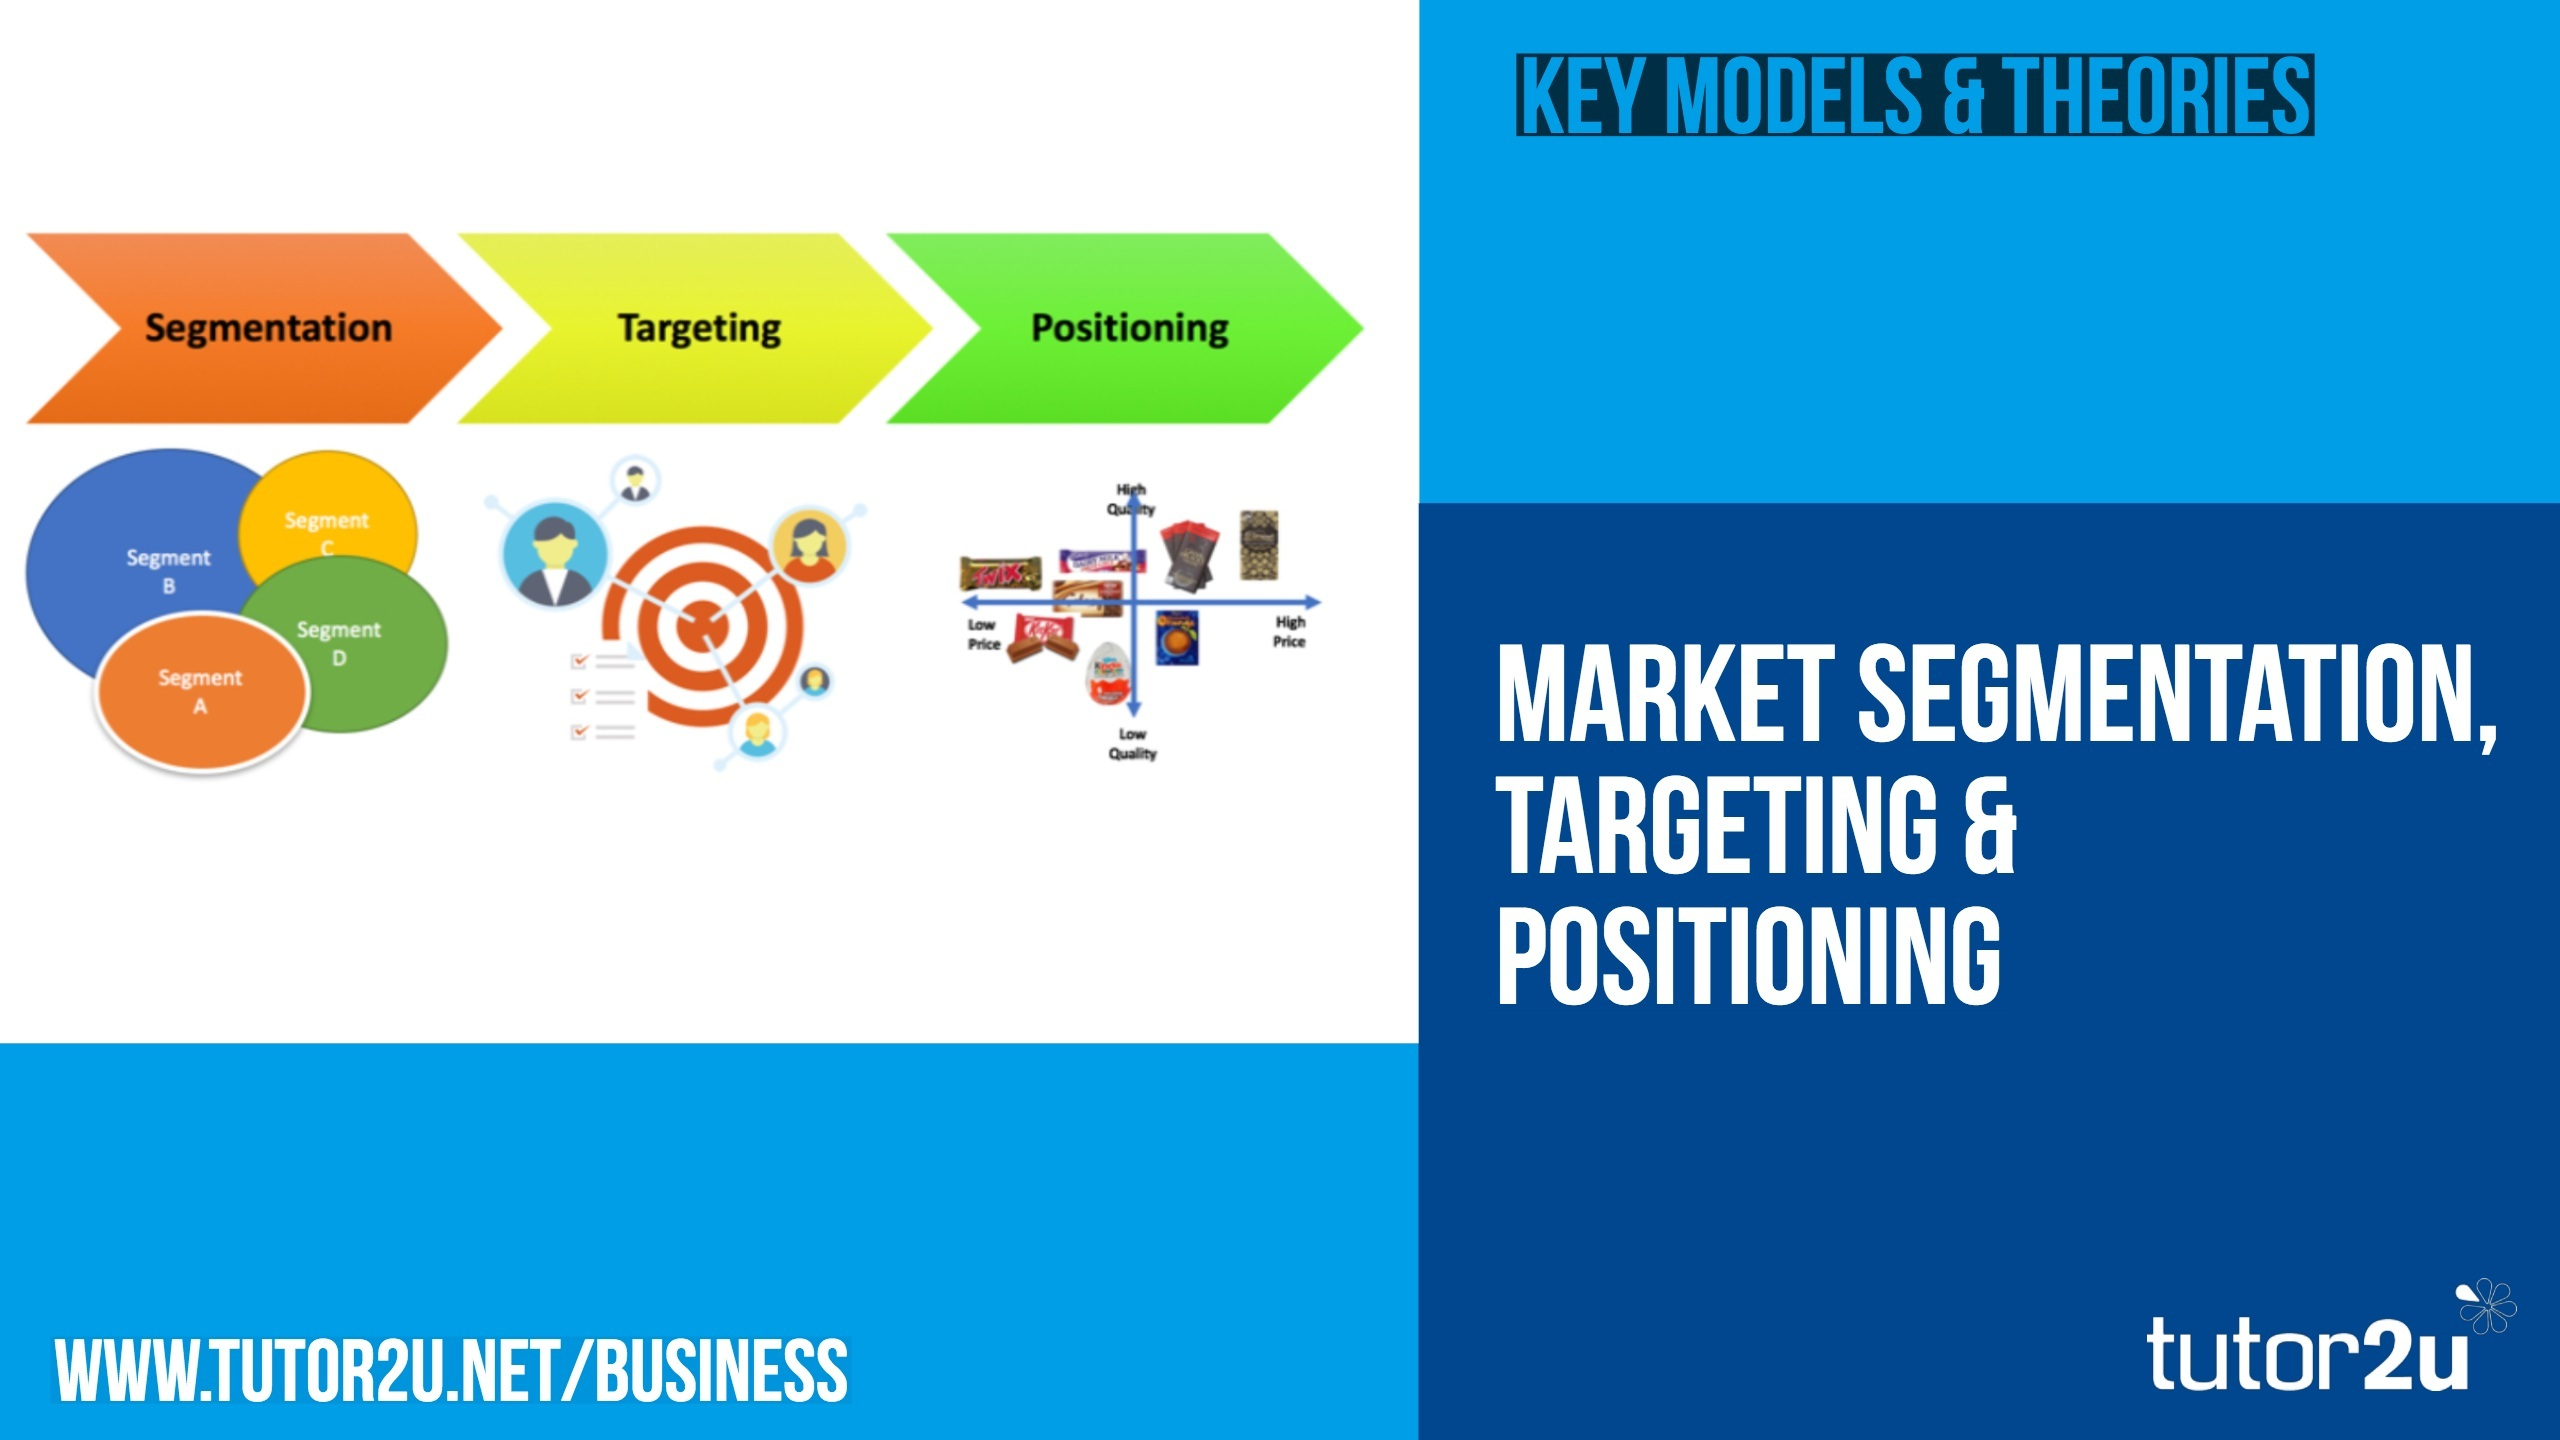 segmentation targeting positioning of samsung Today, segmentation, targeting and positioning (stp) is a familiar strategic approach in modern marketing it is one of the most commonly applied marketing models in practice.